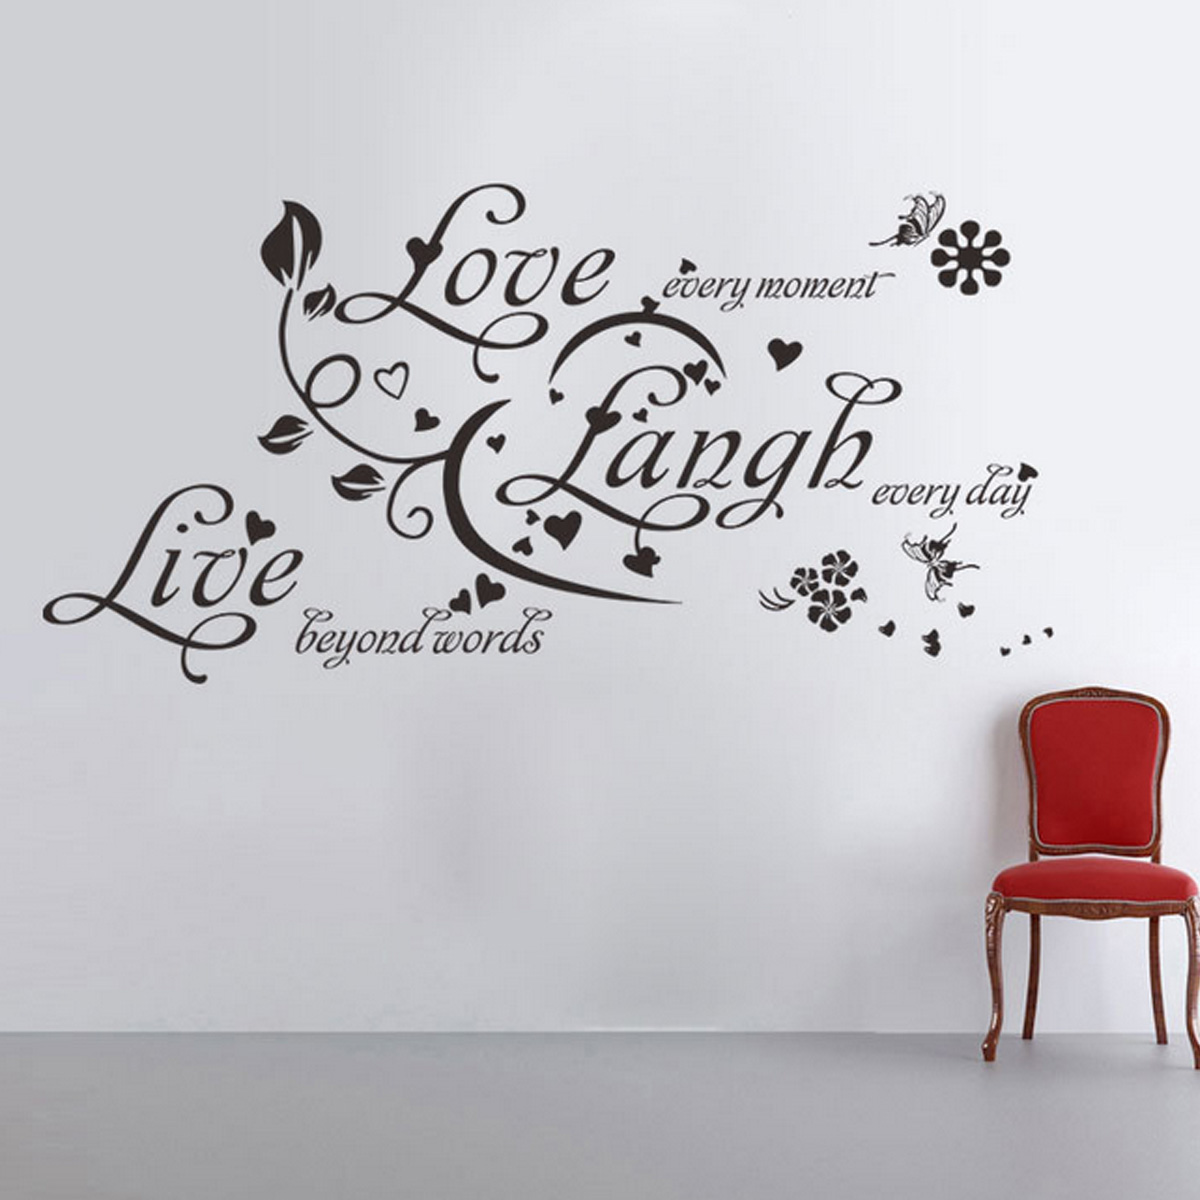 Wall Art Words Diy : Diy fashion vinyl art quote words wall stickers home decal